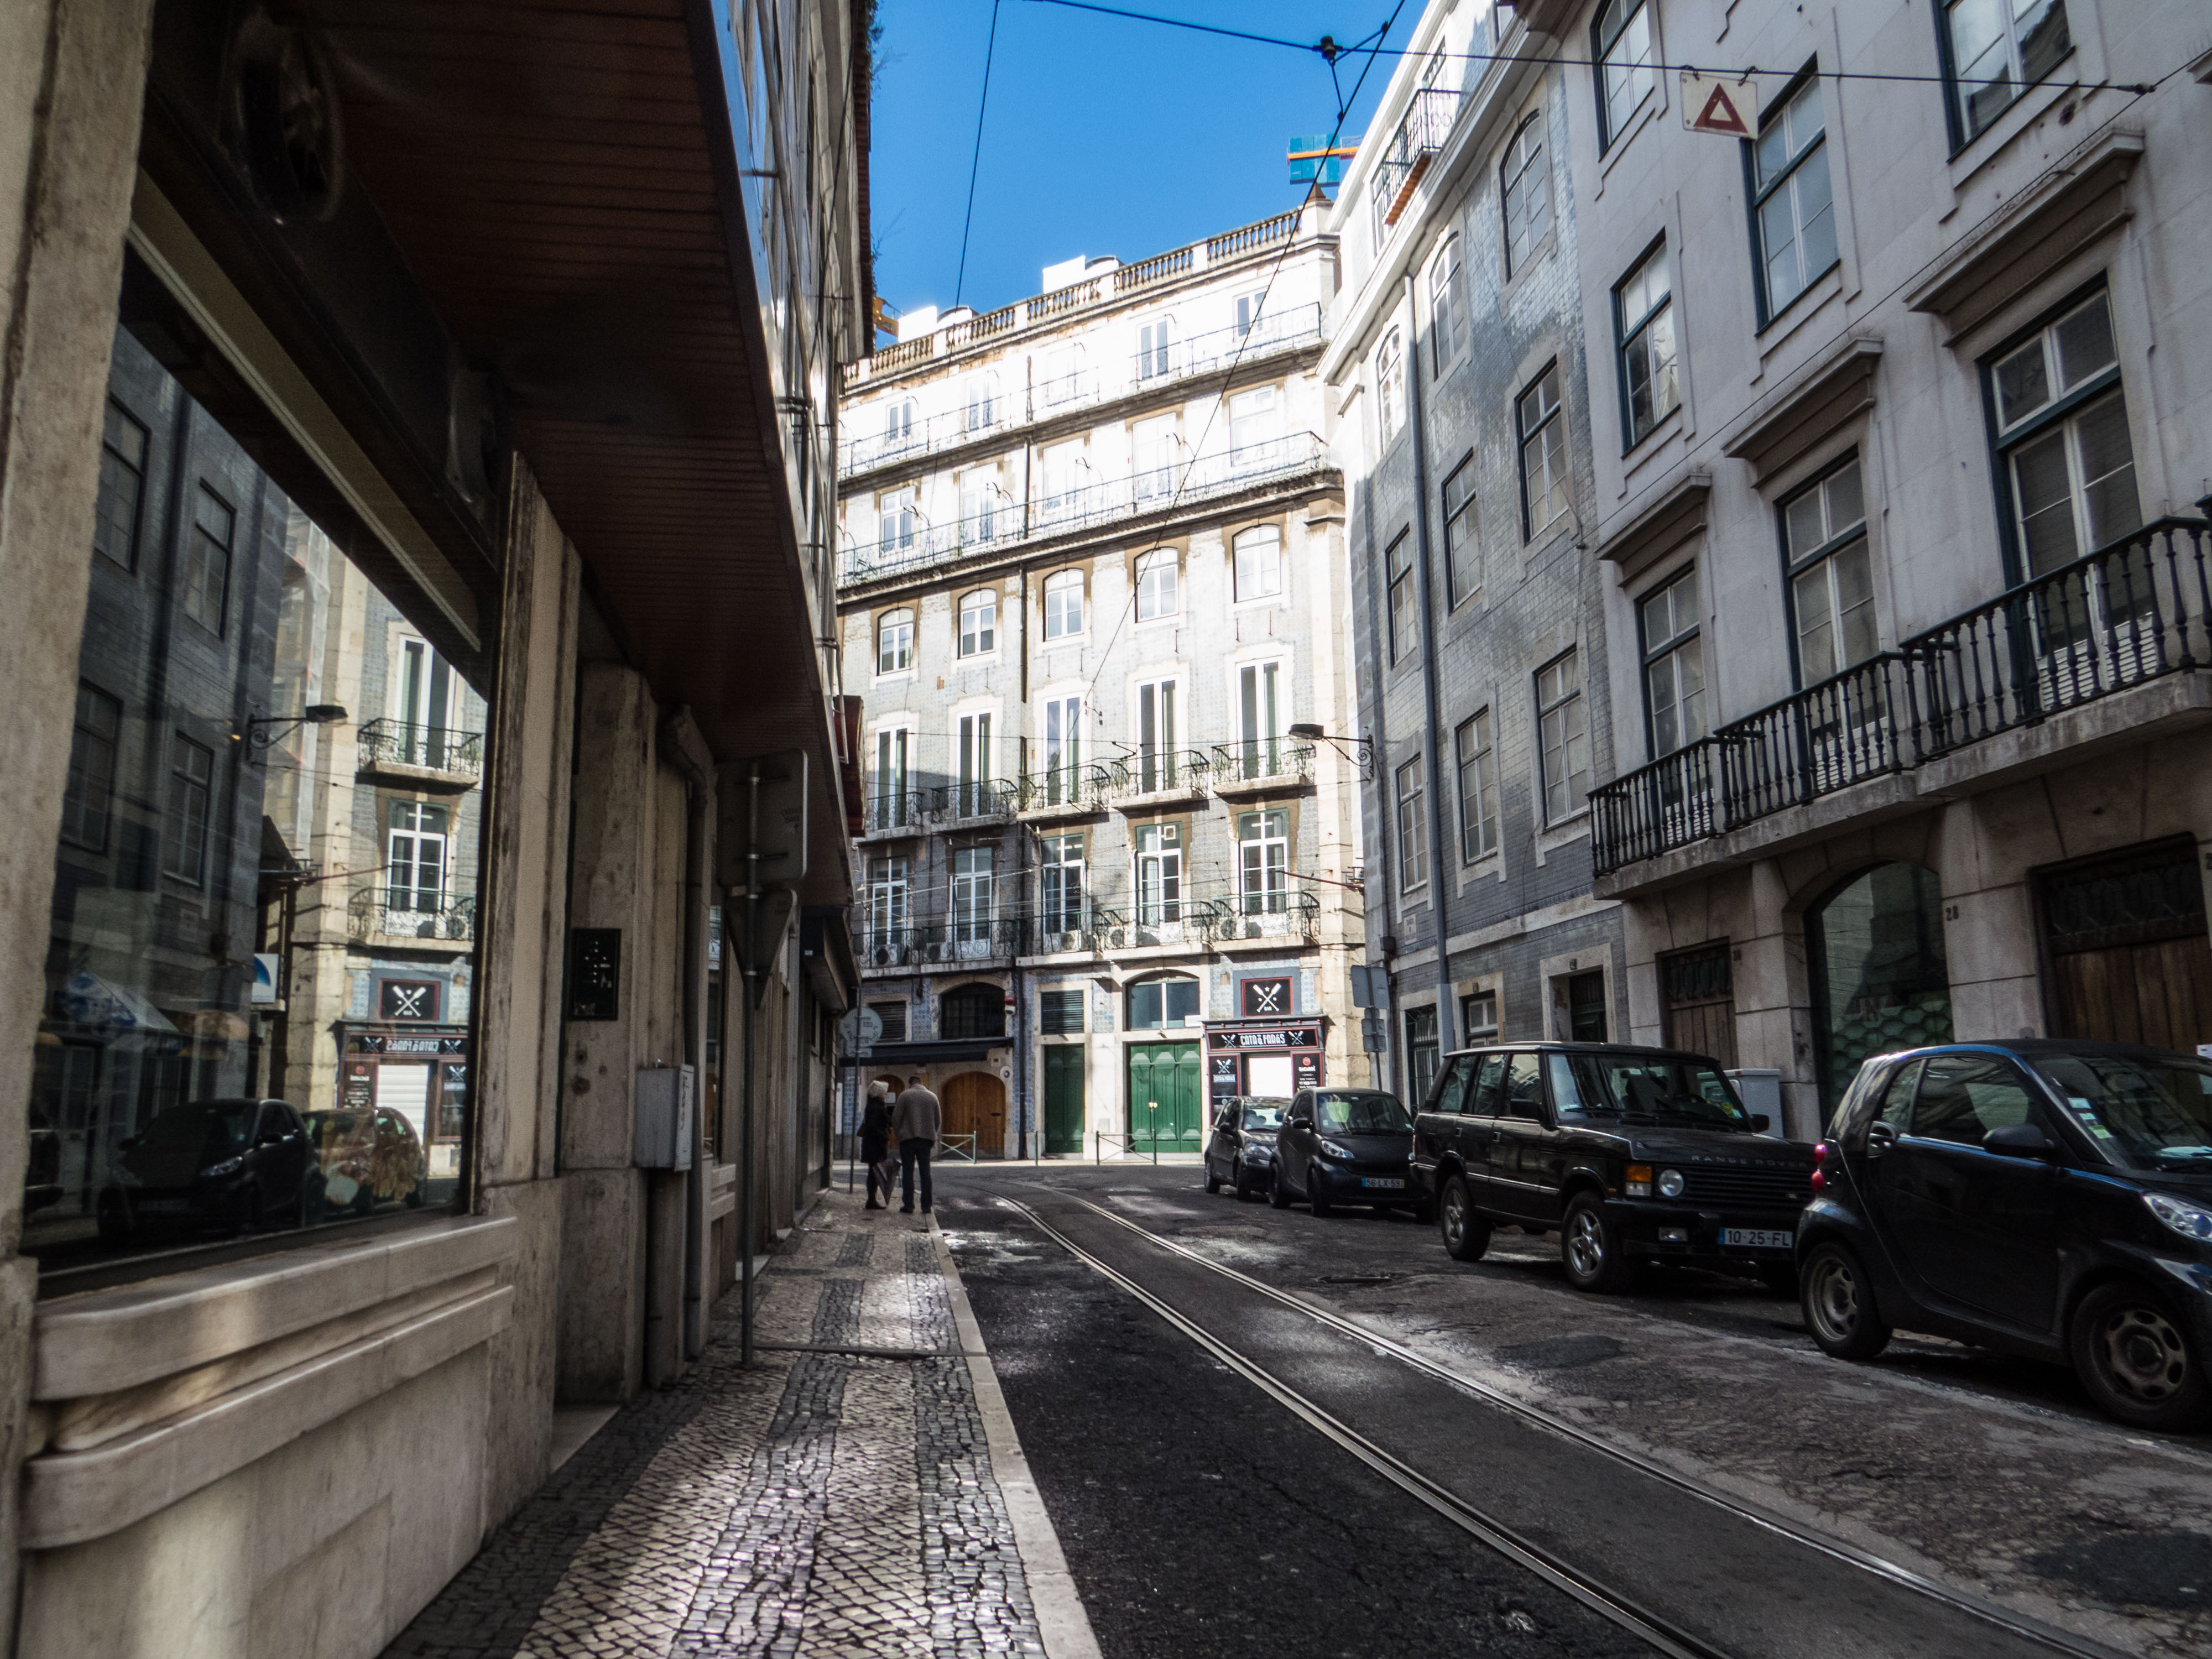 Architecture of Lisbon, Shops, Road, Stores, Street, HQ Photo